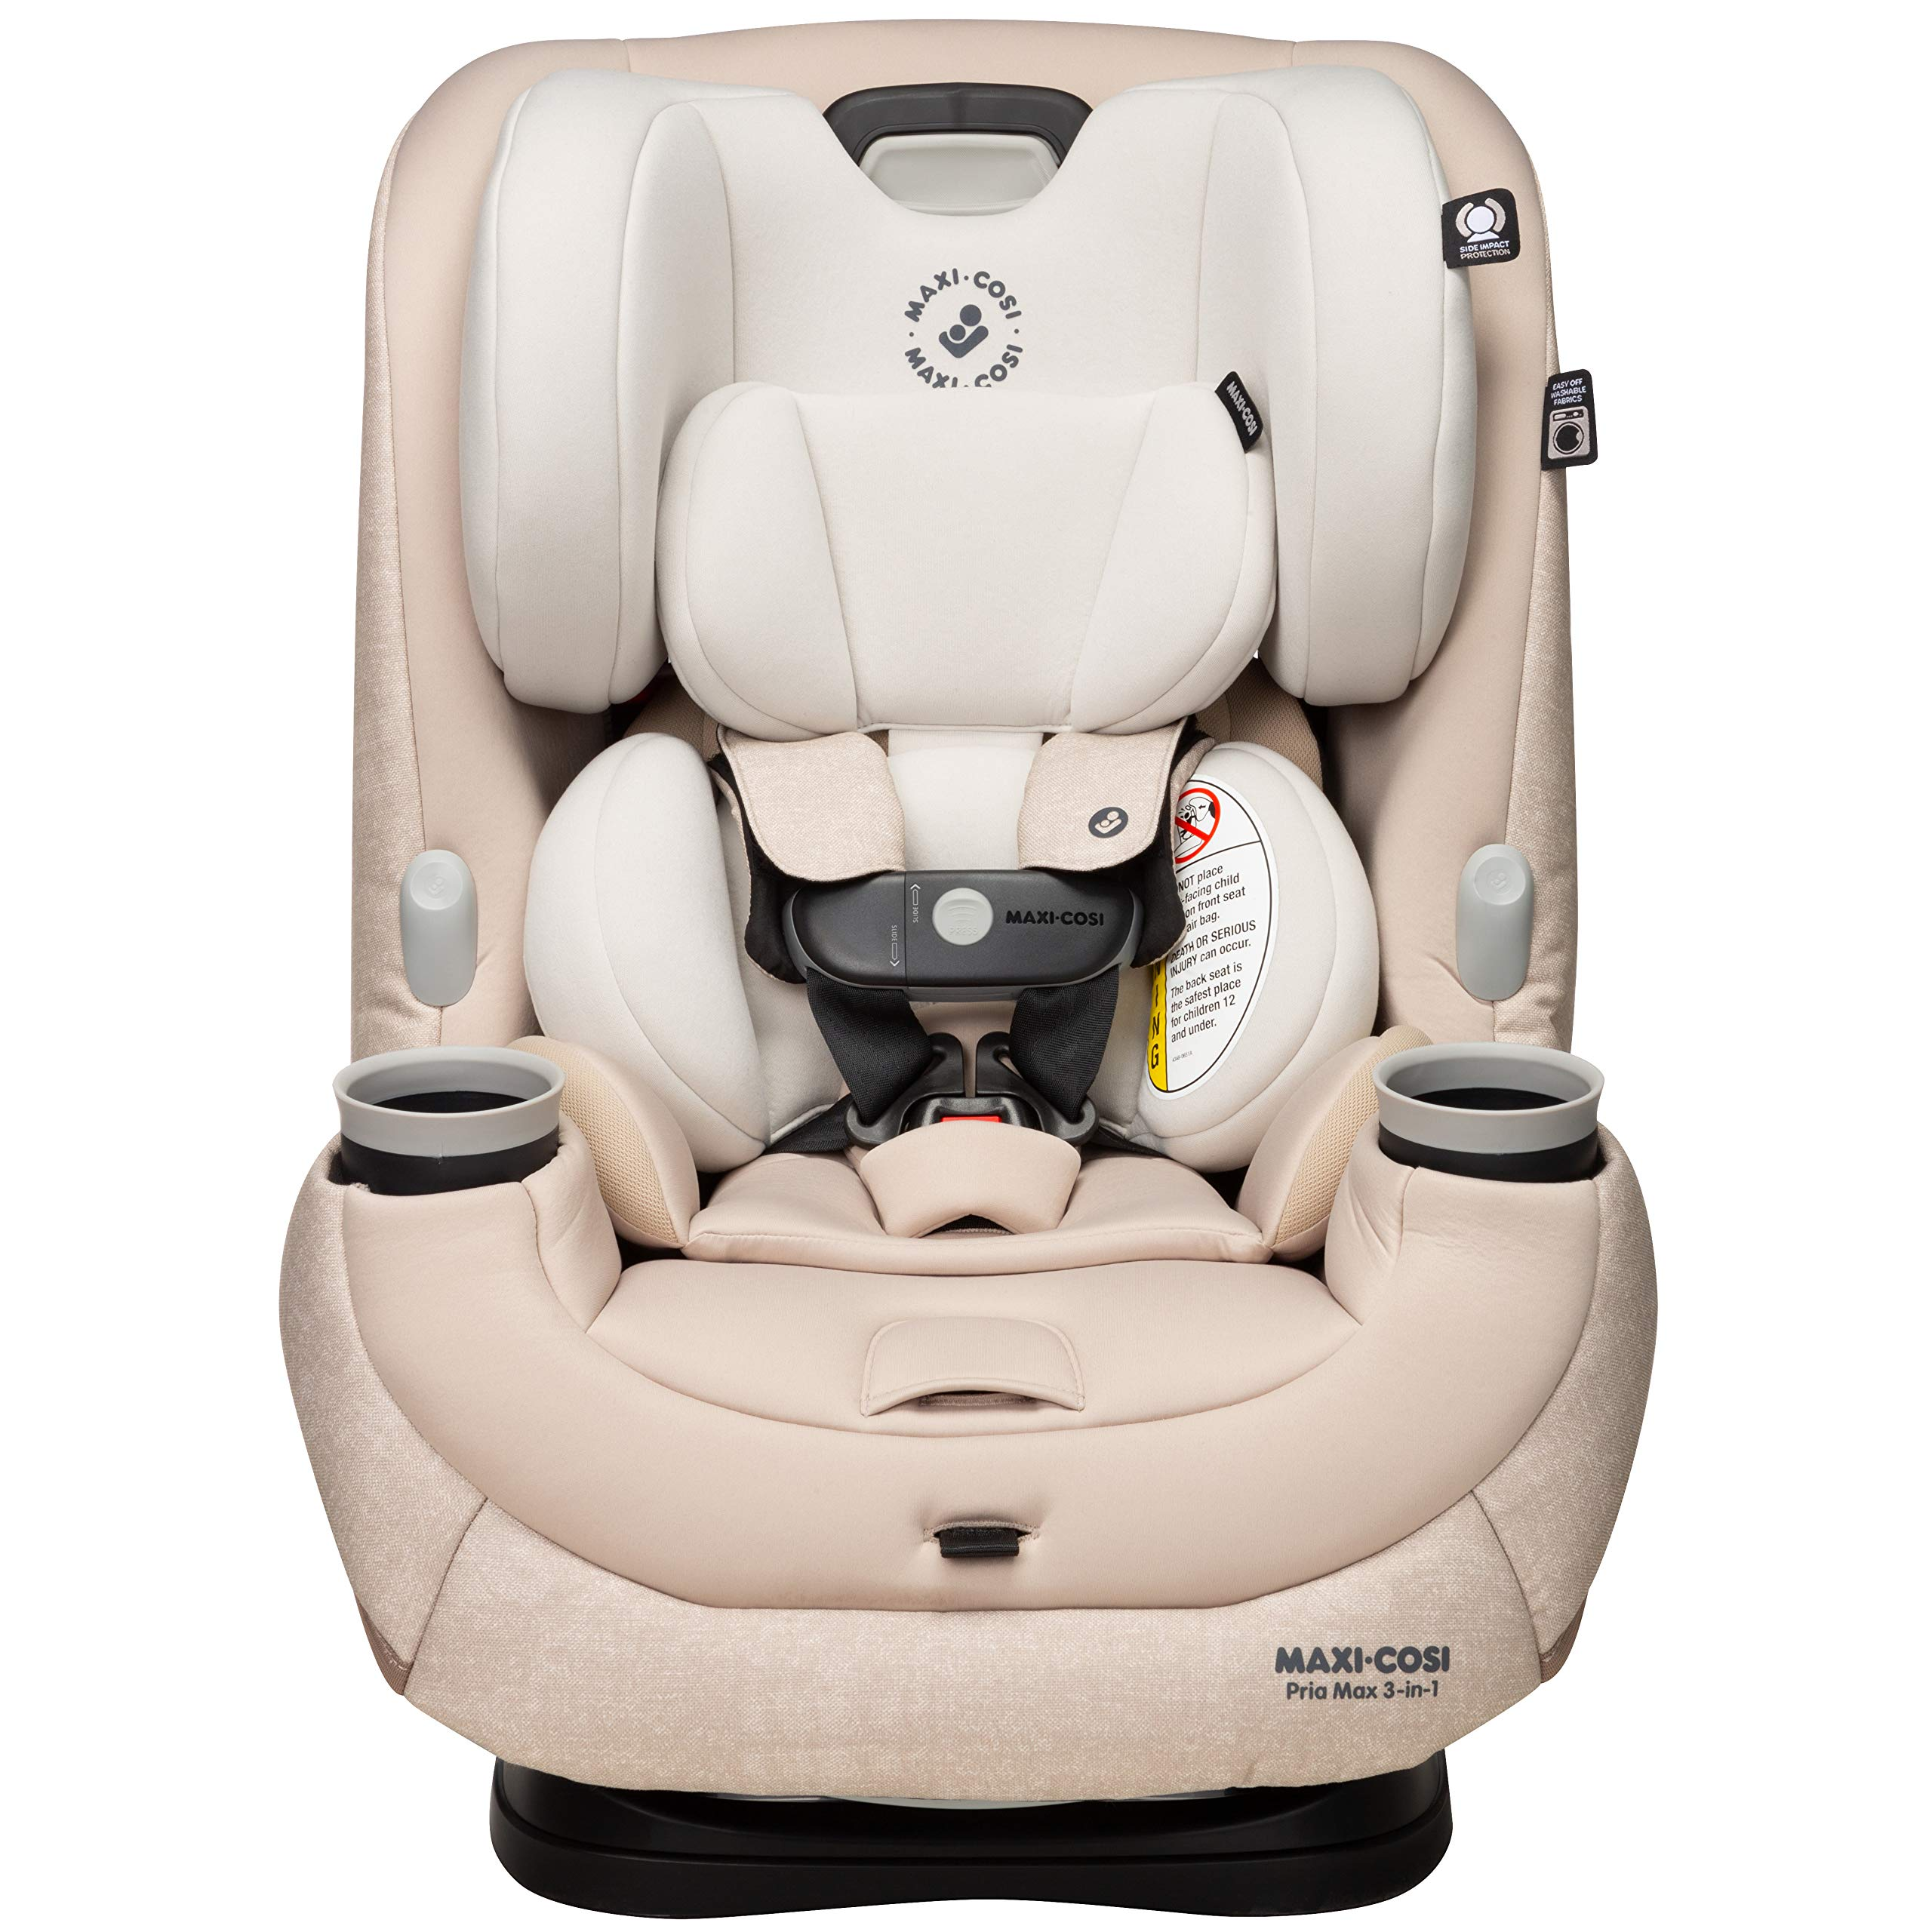 0-12 Months Maxi-Cosi Mico Nxt and AP Infant Car Seat Stand-Alone Base Black